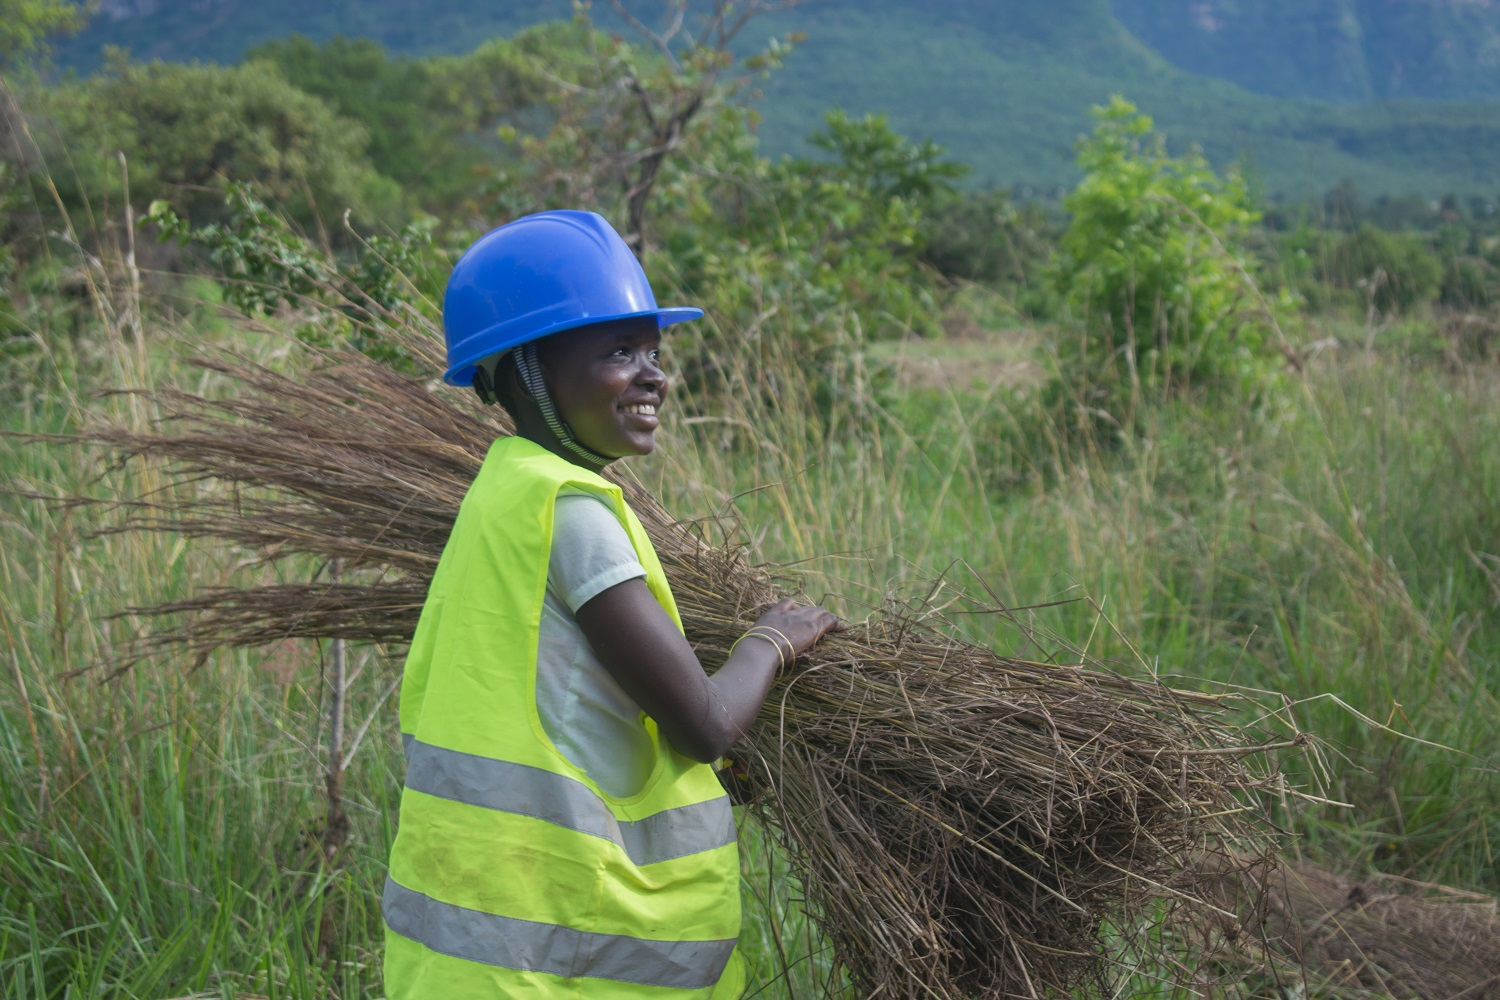 Trainee Roseline Collects Grass at Nakapiripirit